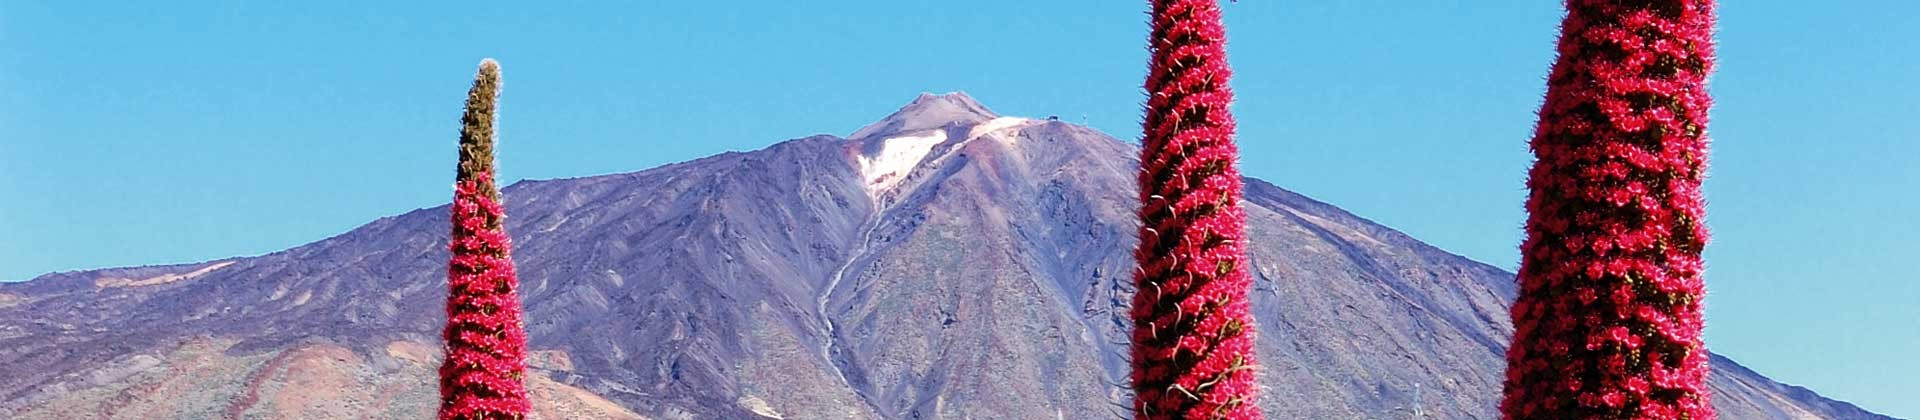 https://www.goodmorningtenerife.com/wp-content/uploads/2014/08/03_slide_teide_GM_Tenerife-1920x420.jpg